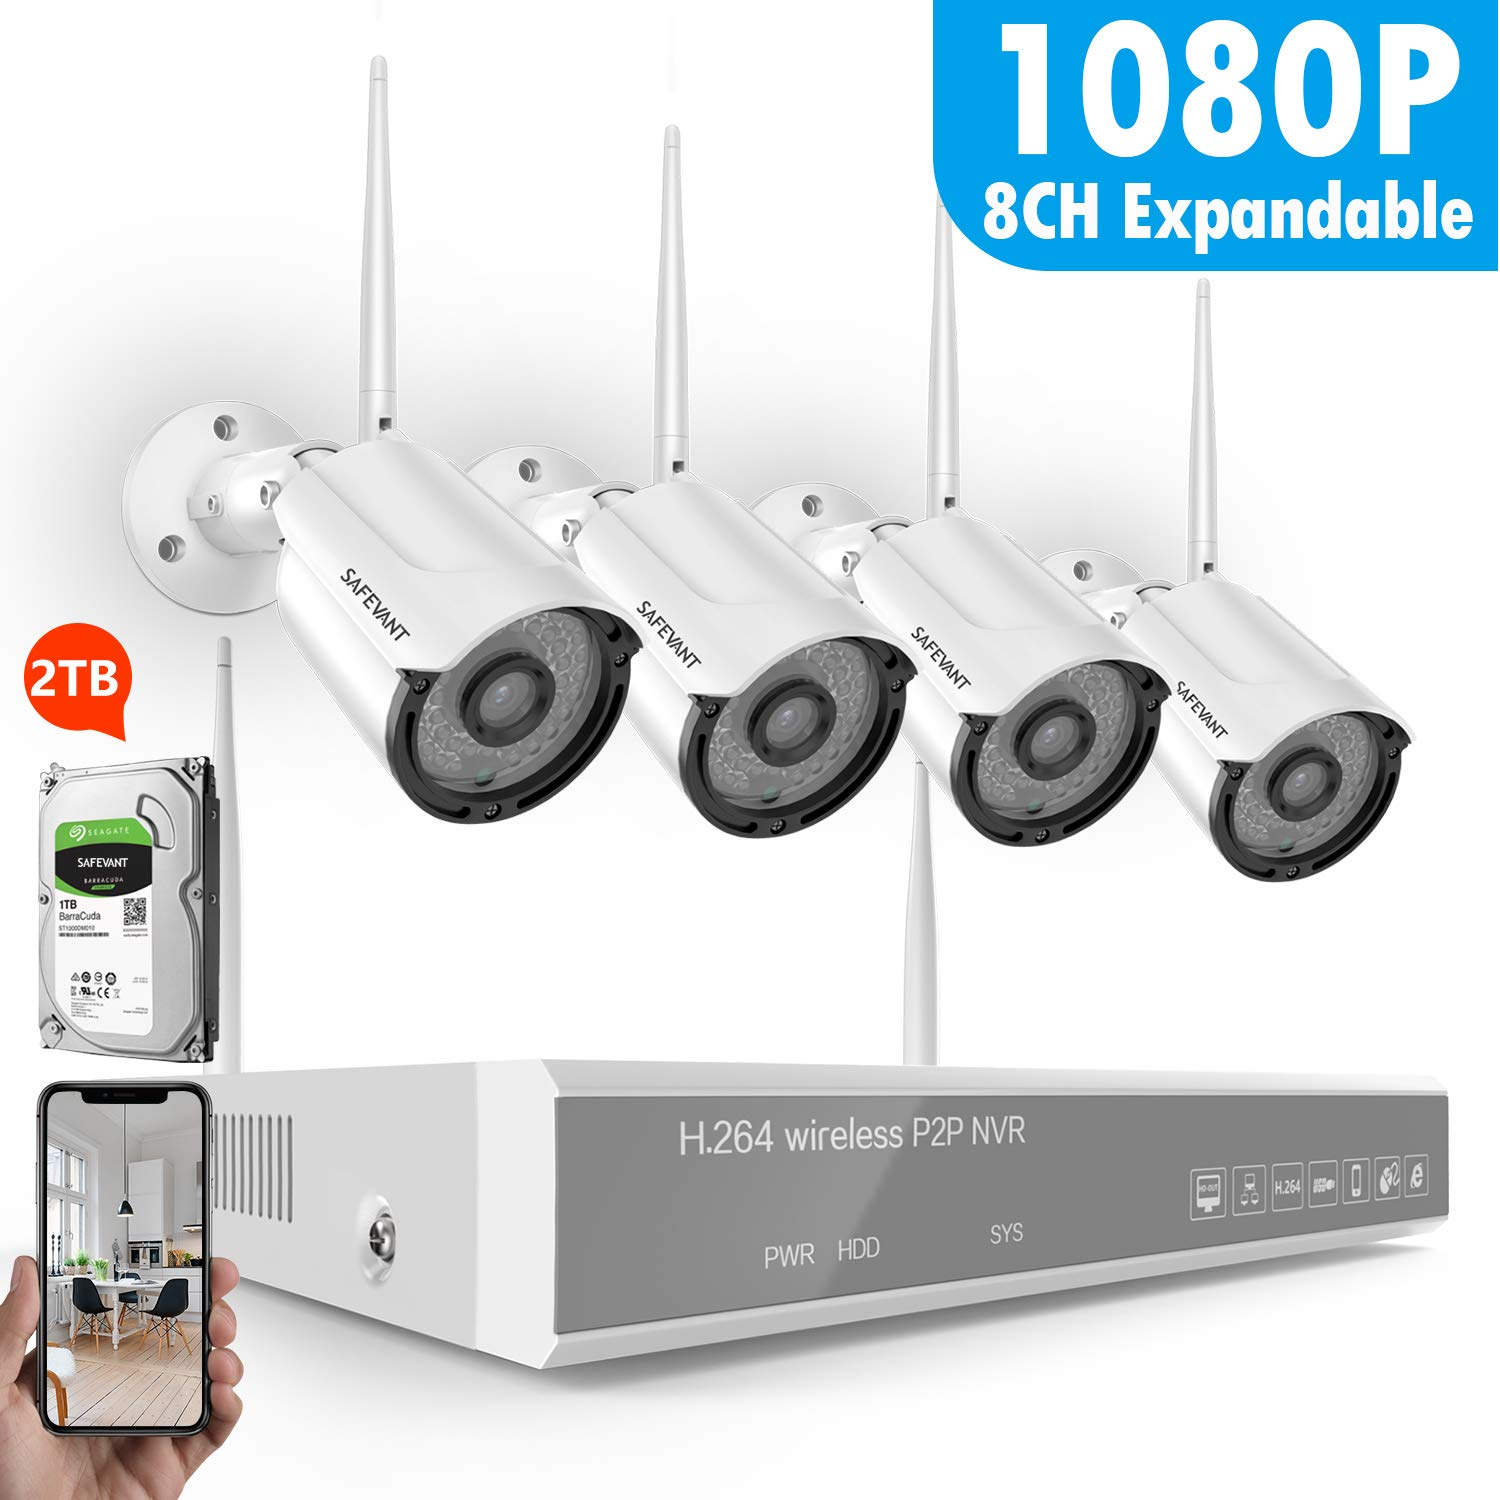 1TB Hard Drive Security Camera System Wireless,Safevant 8CH 1080P Security Camera System 1080P NVR/&8CH Expandable ,4PCS 960P Inddor//Outdoor IP66 Wireless Security Cameras,Plug/&Play,NO Monthly Fee Safesky